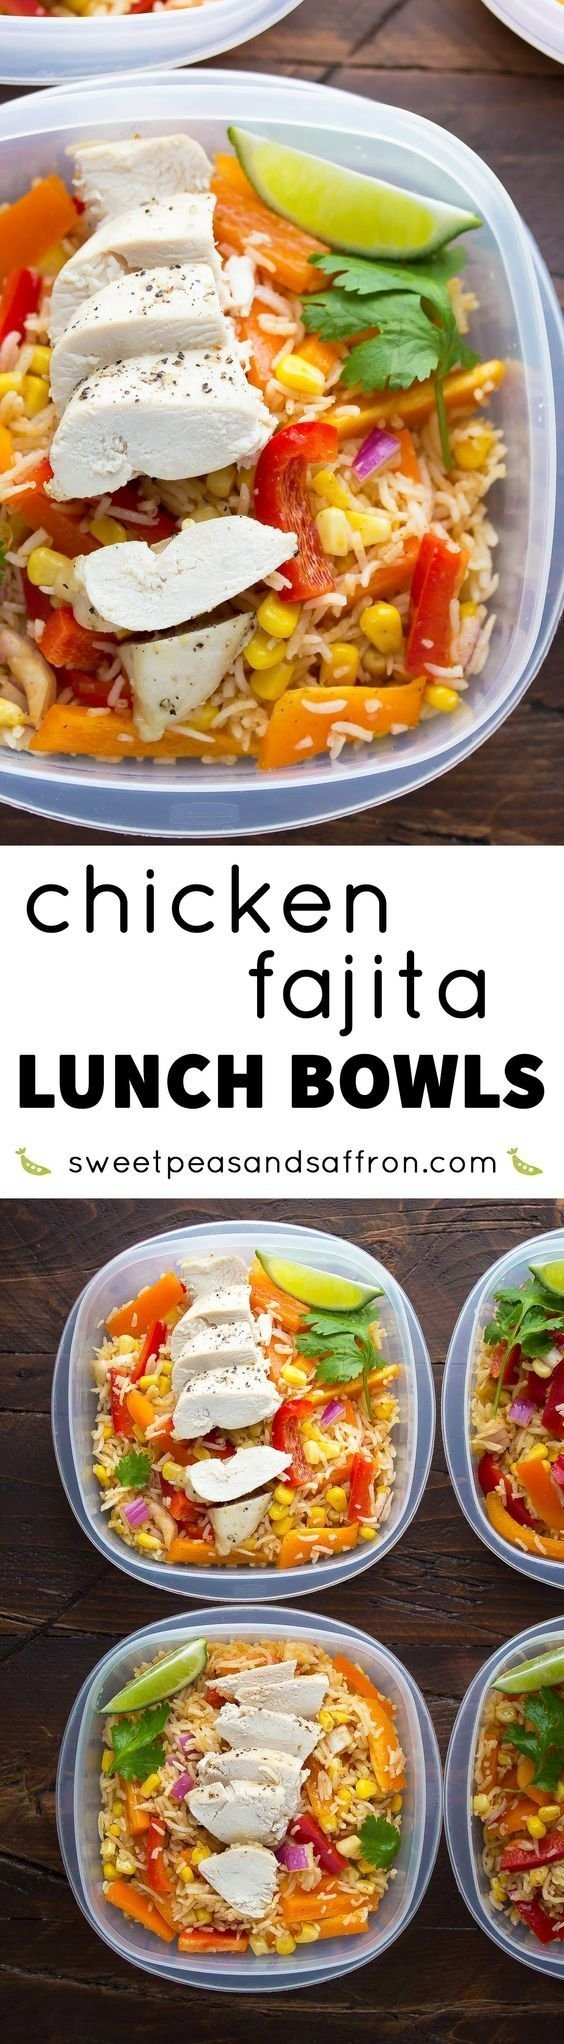 10 Most Popular Work Lunch Ideas For Men 230 best kid friendly recipes for picky eaters images on pinterest